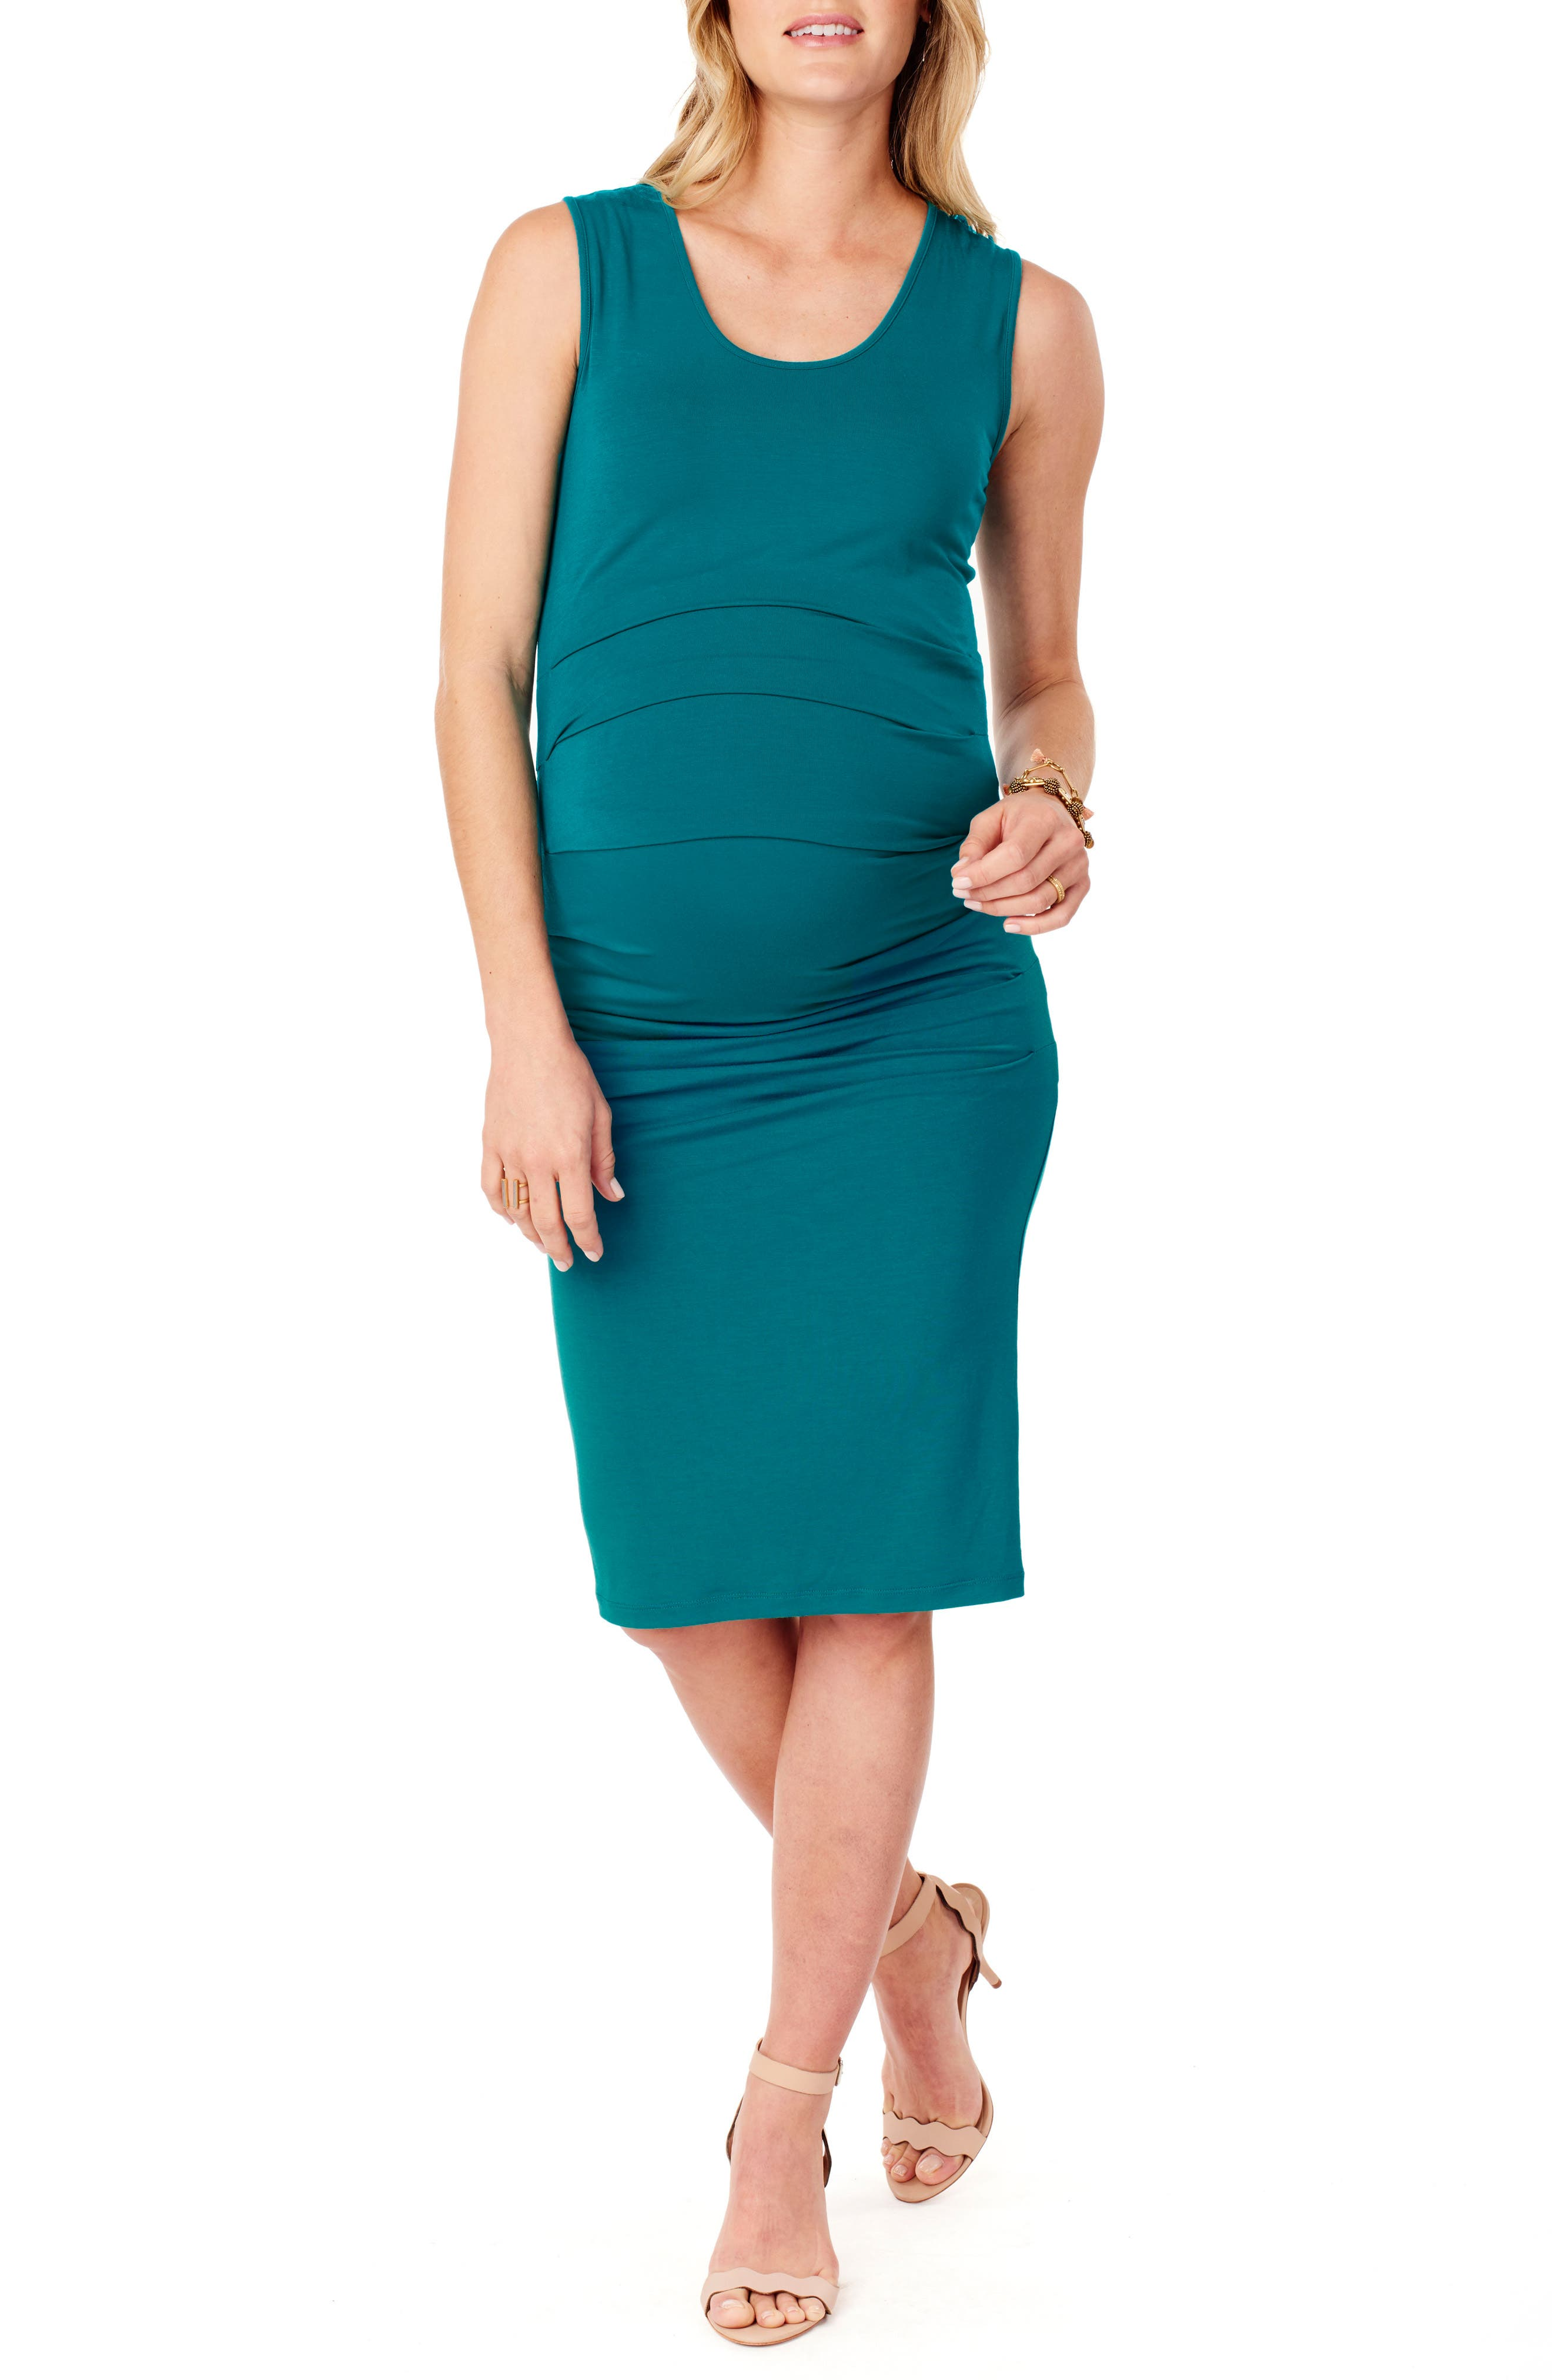 Ruched Maternity Tank Dress,                         Main,                         color, TEAL